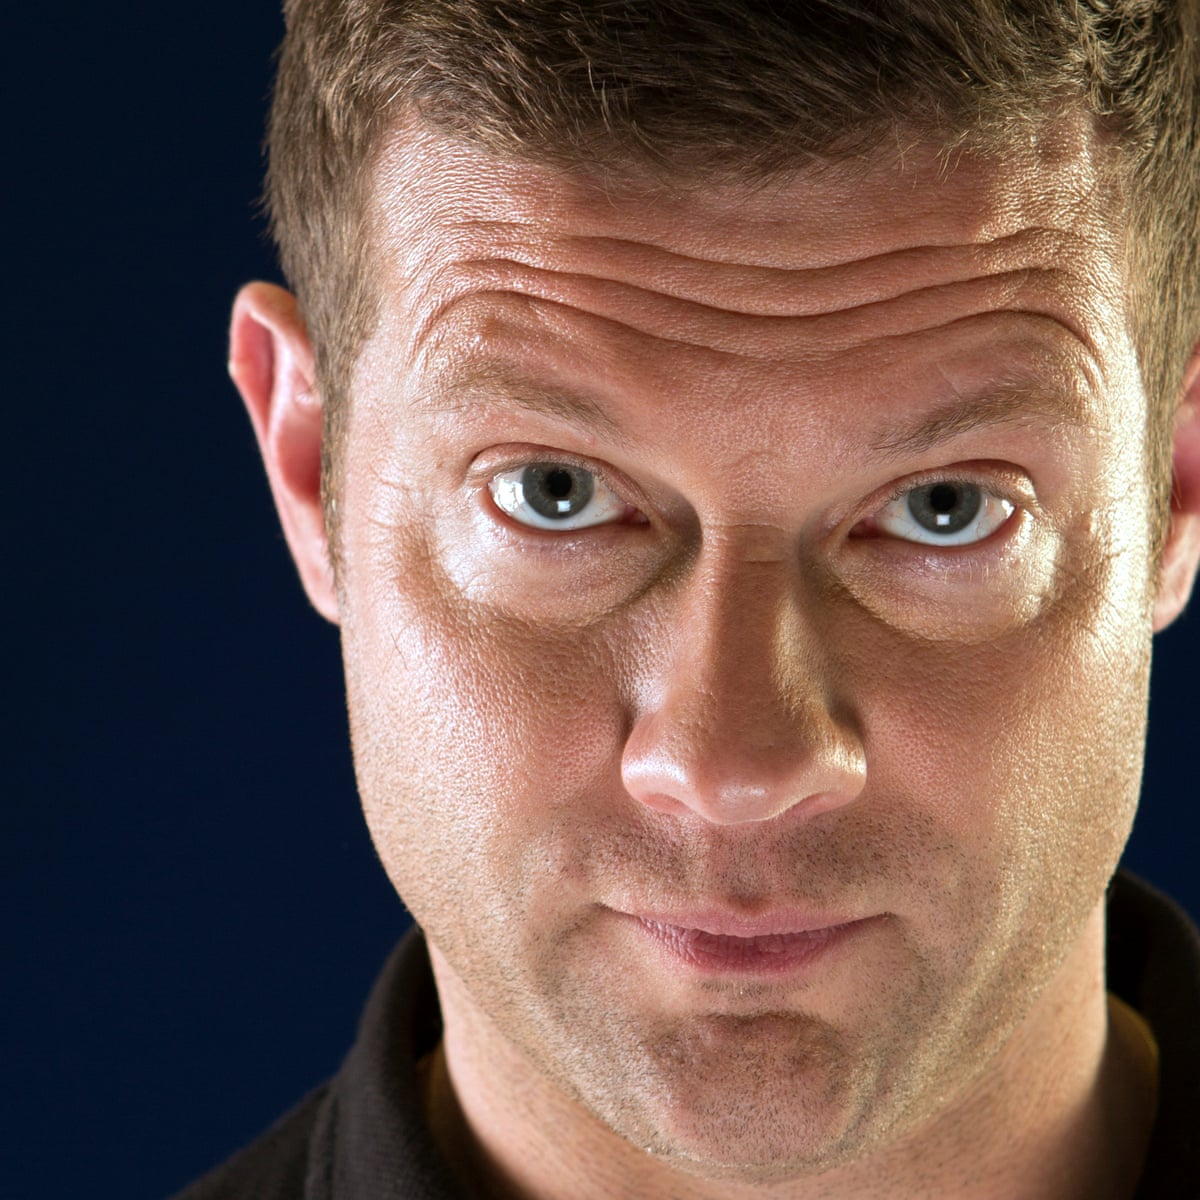 Rest X Factor For A Year Dermot O Leary Tells Simon Cowell The X Factor The Guardian